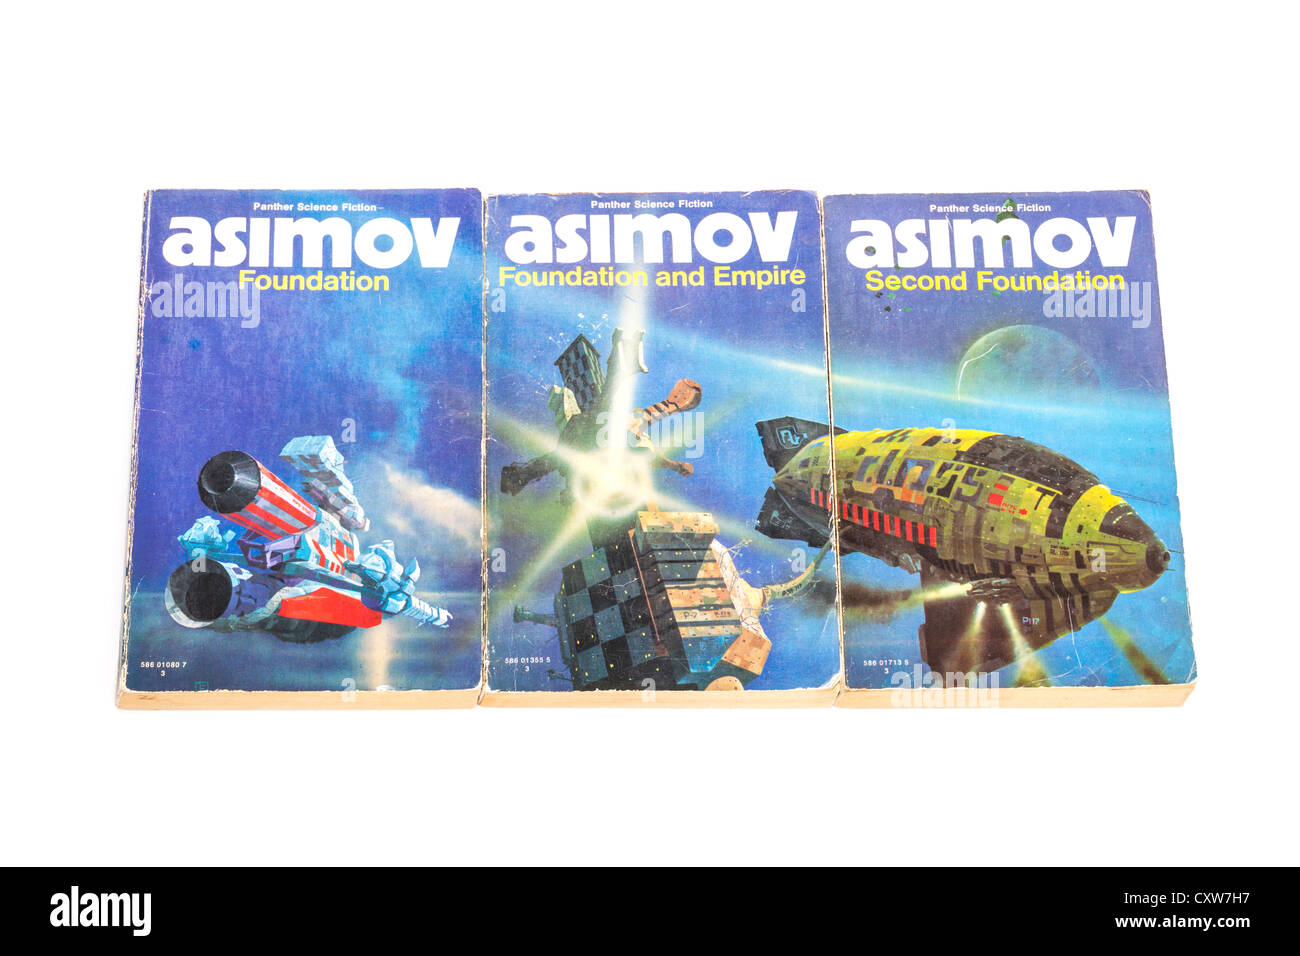 Foundation Trilogy by Isaac Asimov, printed in 1973. - Stock Image